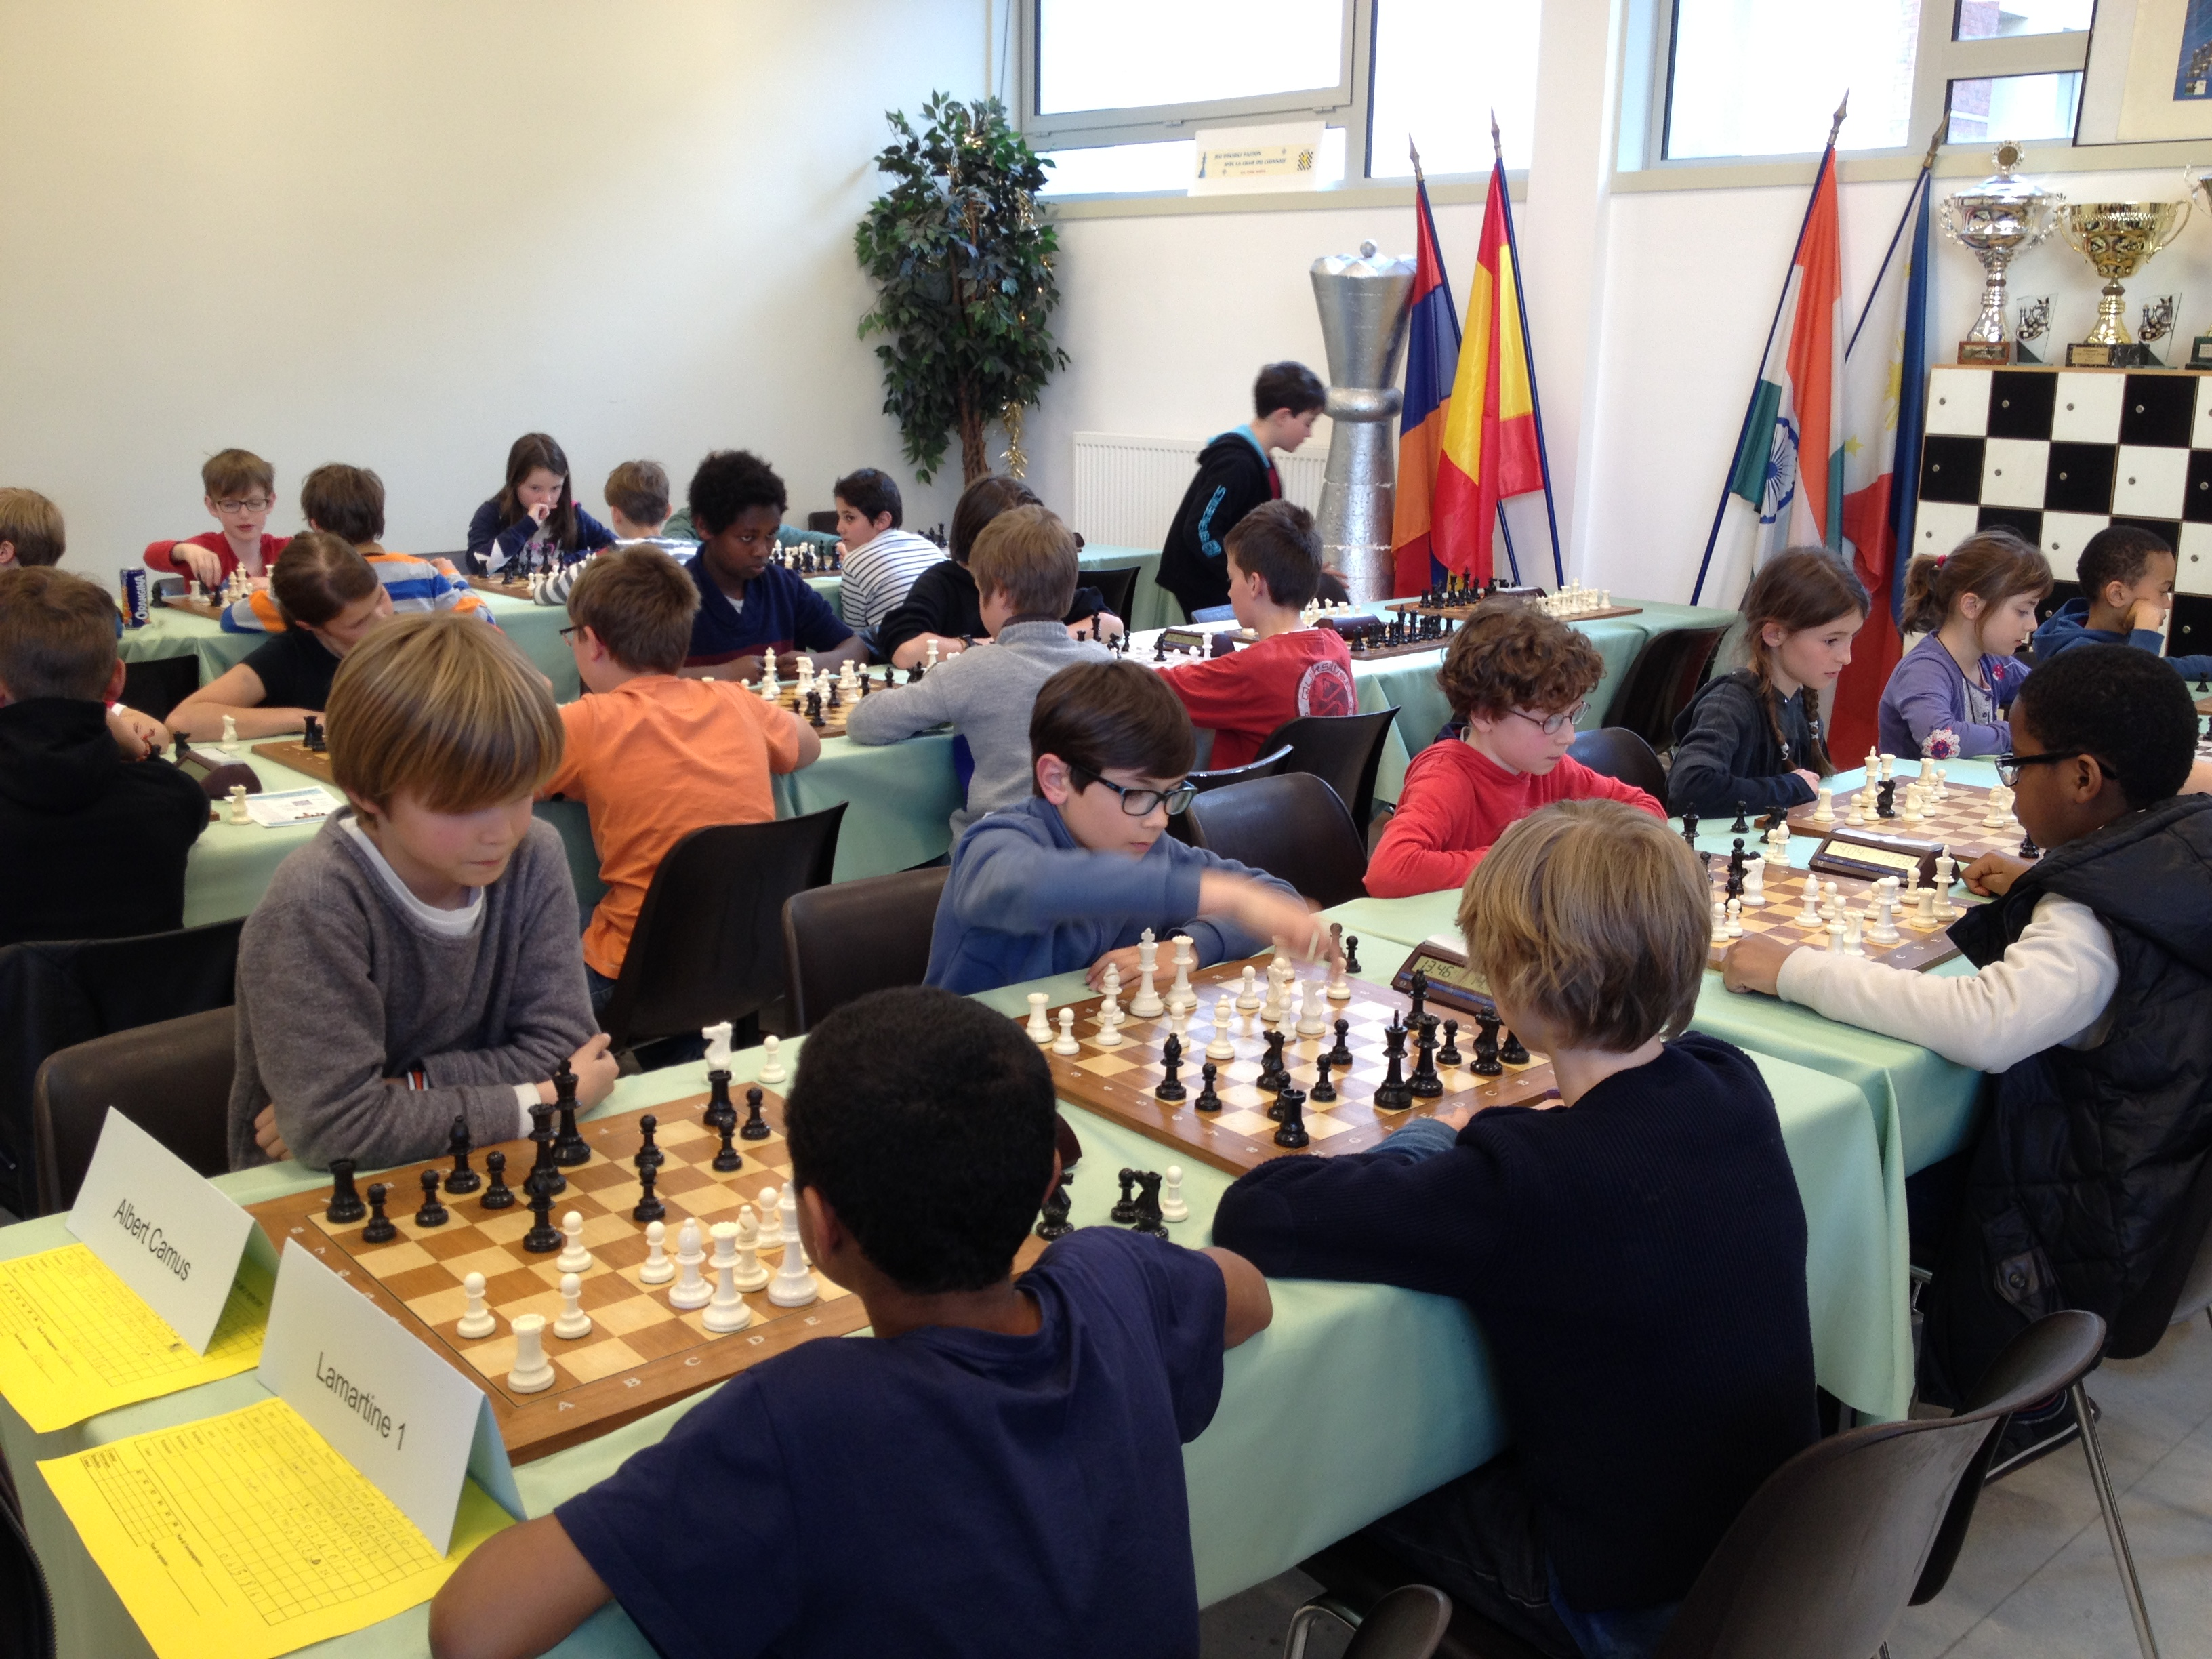 SCOLAIRES CHESS IN LYON